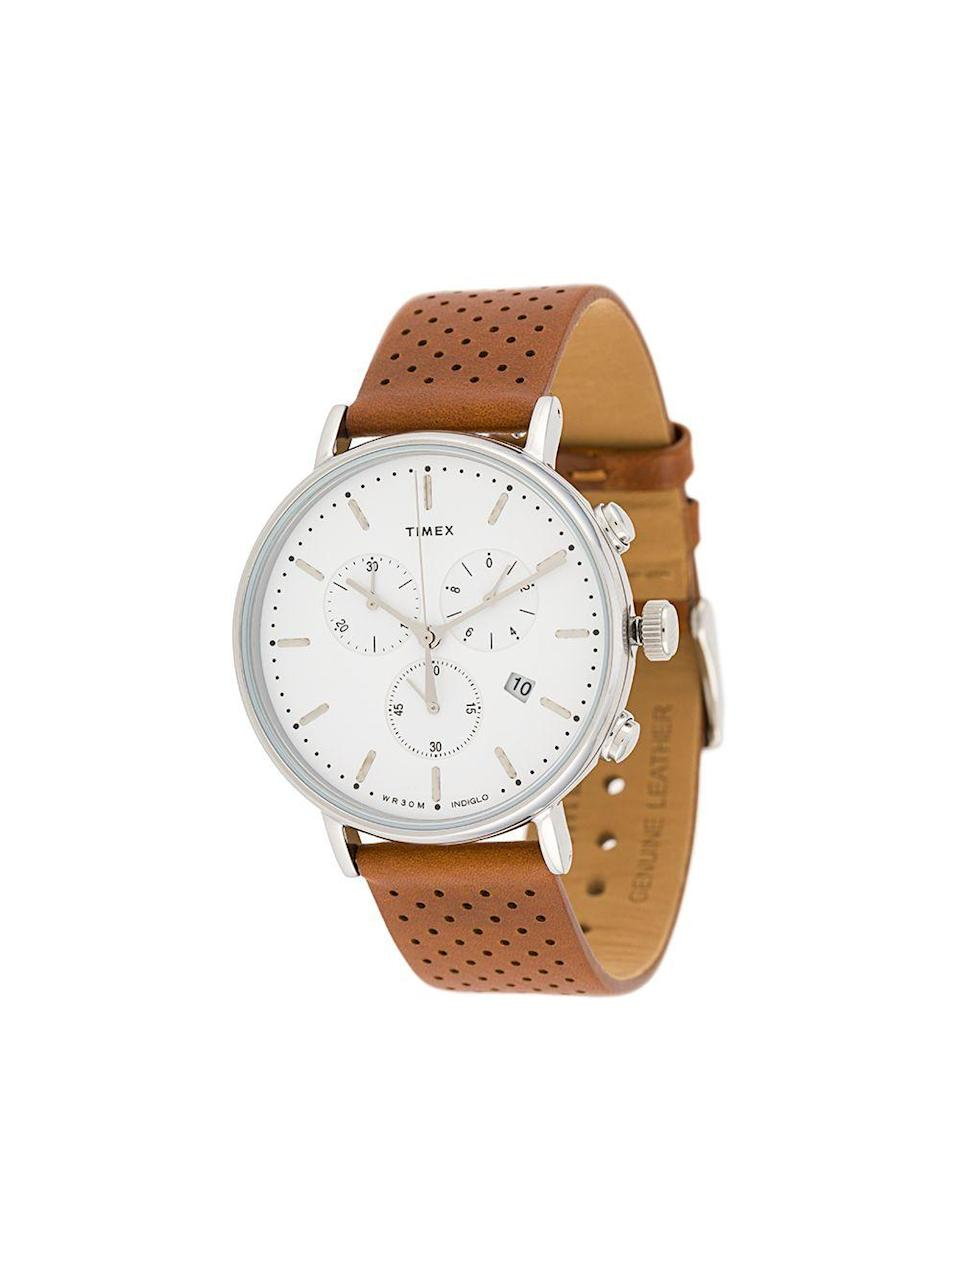 """<p><strong>TIMEX</strong></p><p>farfetch.com</p><p><strong>$110.00</strong></p><p><a href=""""https://go.redirectingat.com?id=74968X1596630&url=https%3A%2F%2Fwww.farfetch.com%2Fshopping%2Fmen%2Ftimex-fairfield-chronograph-41mm-watch-item-14378793.aspx&sref=https%3A%2F%2Fwww.cosmopolitan.com%2Fstyle-beauty%2Ffashion%2Fg32619153%2Fgifts-for-man-who-has-everything%2F"""" rel=""""nofollow noopener"""" target=""""_blank"""" data-ylk=""""slk:Shop Now"""" class=""""link rapid-noclick-resp"""">Shop Now</a></p><p>Watches don't always have to be insanely expensive. This classic timepiece with a leather strap is a nice option if you don't want to spend major $$$ on one.</p>"""